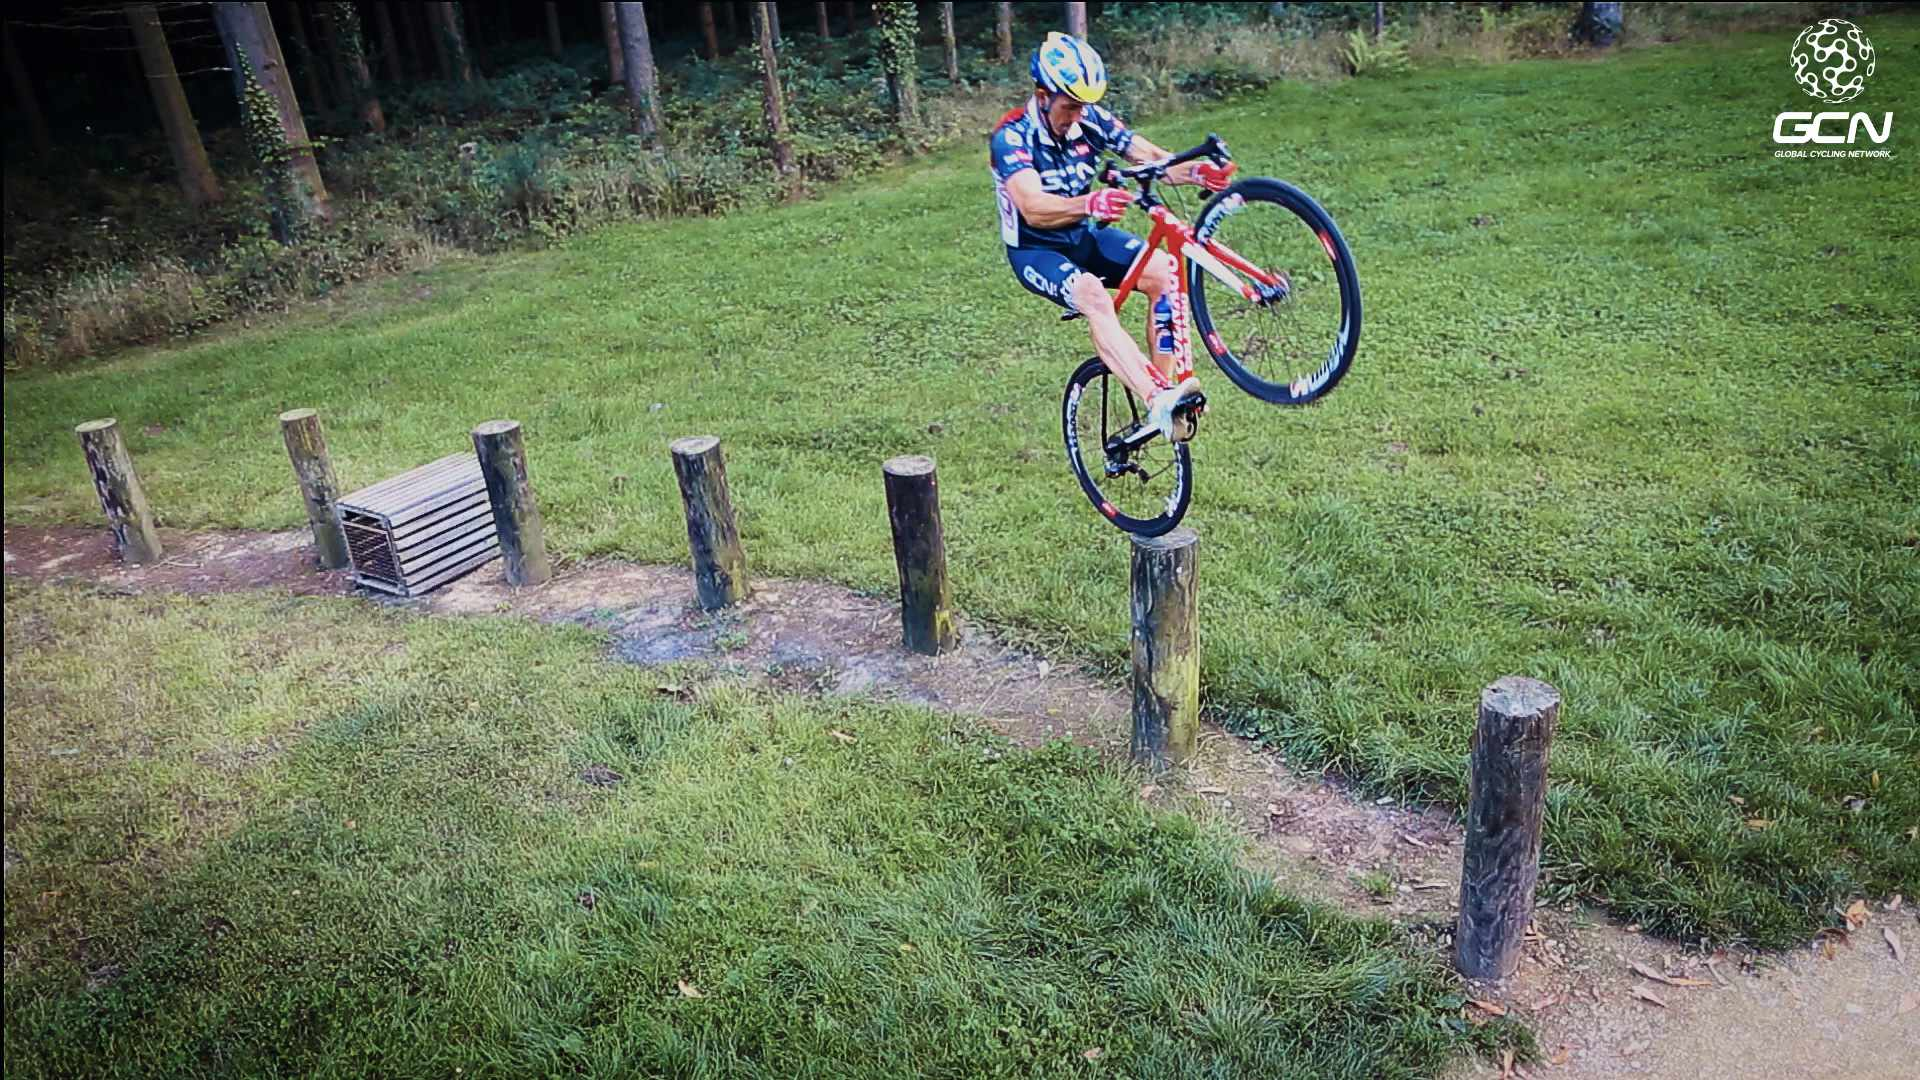 Martyn Ashton and precision riding at its very best – you the man, Mart